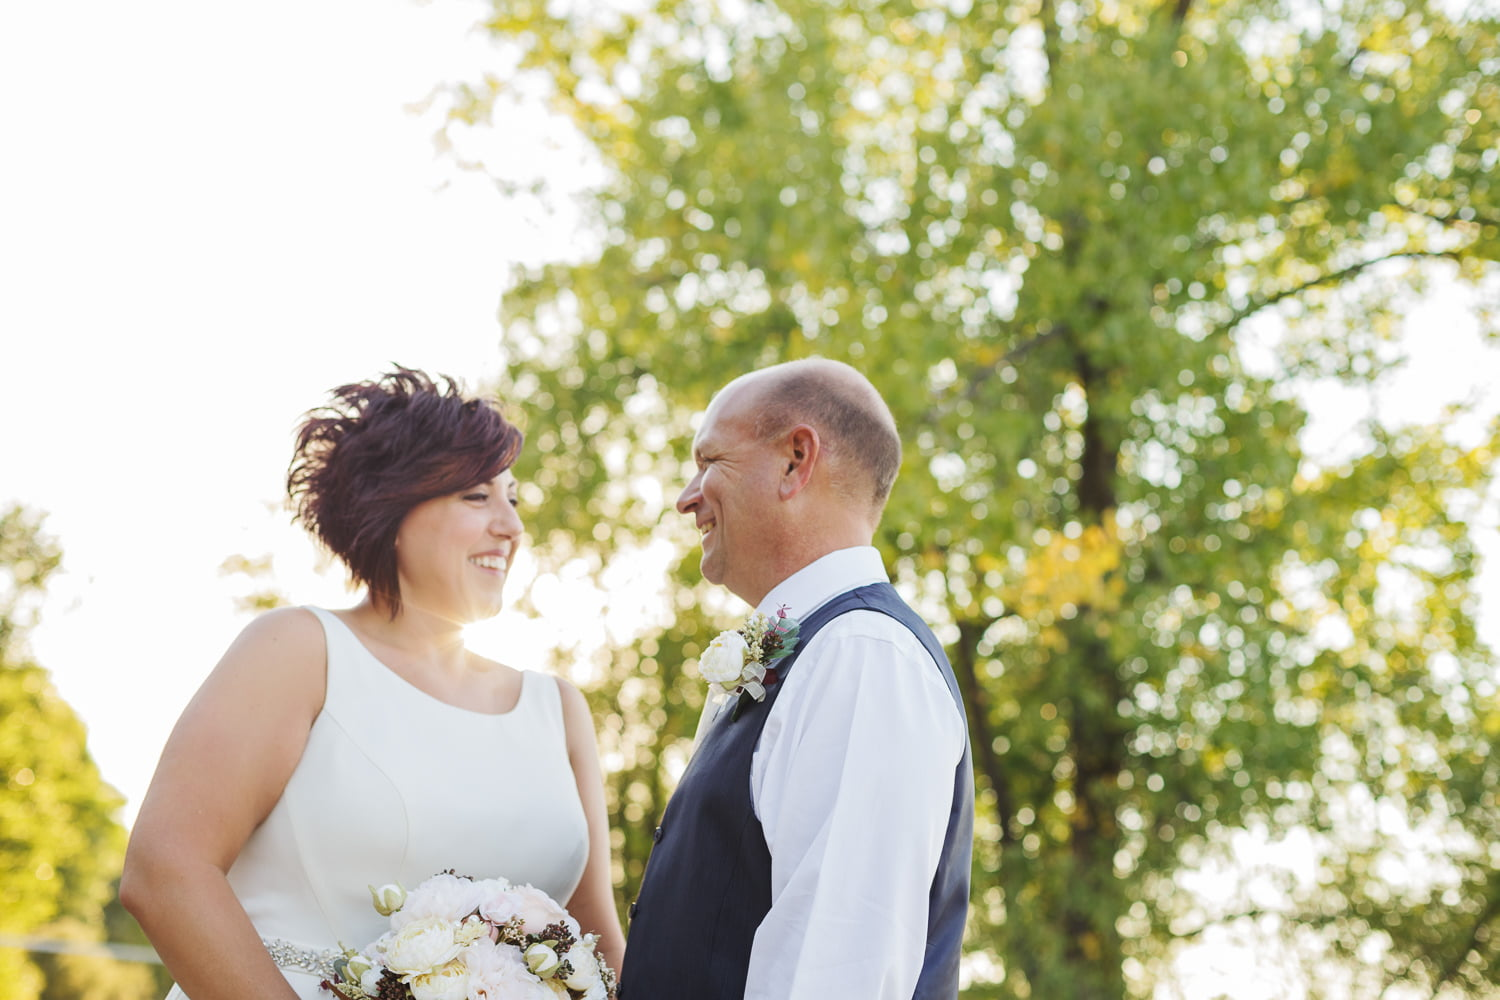 tips for being less nervous about wedding photos